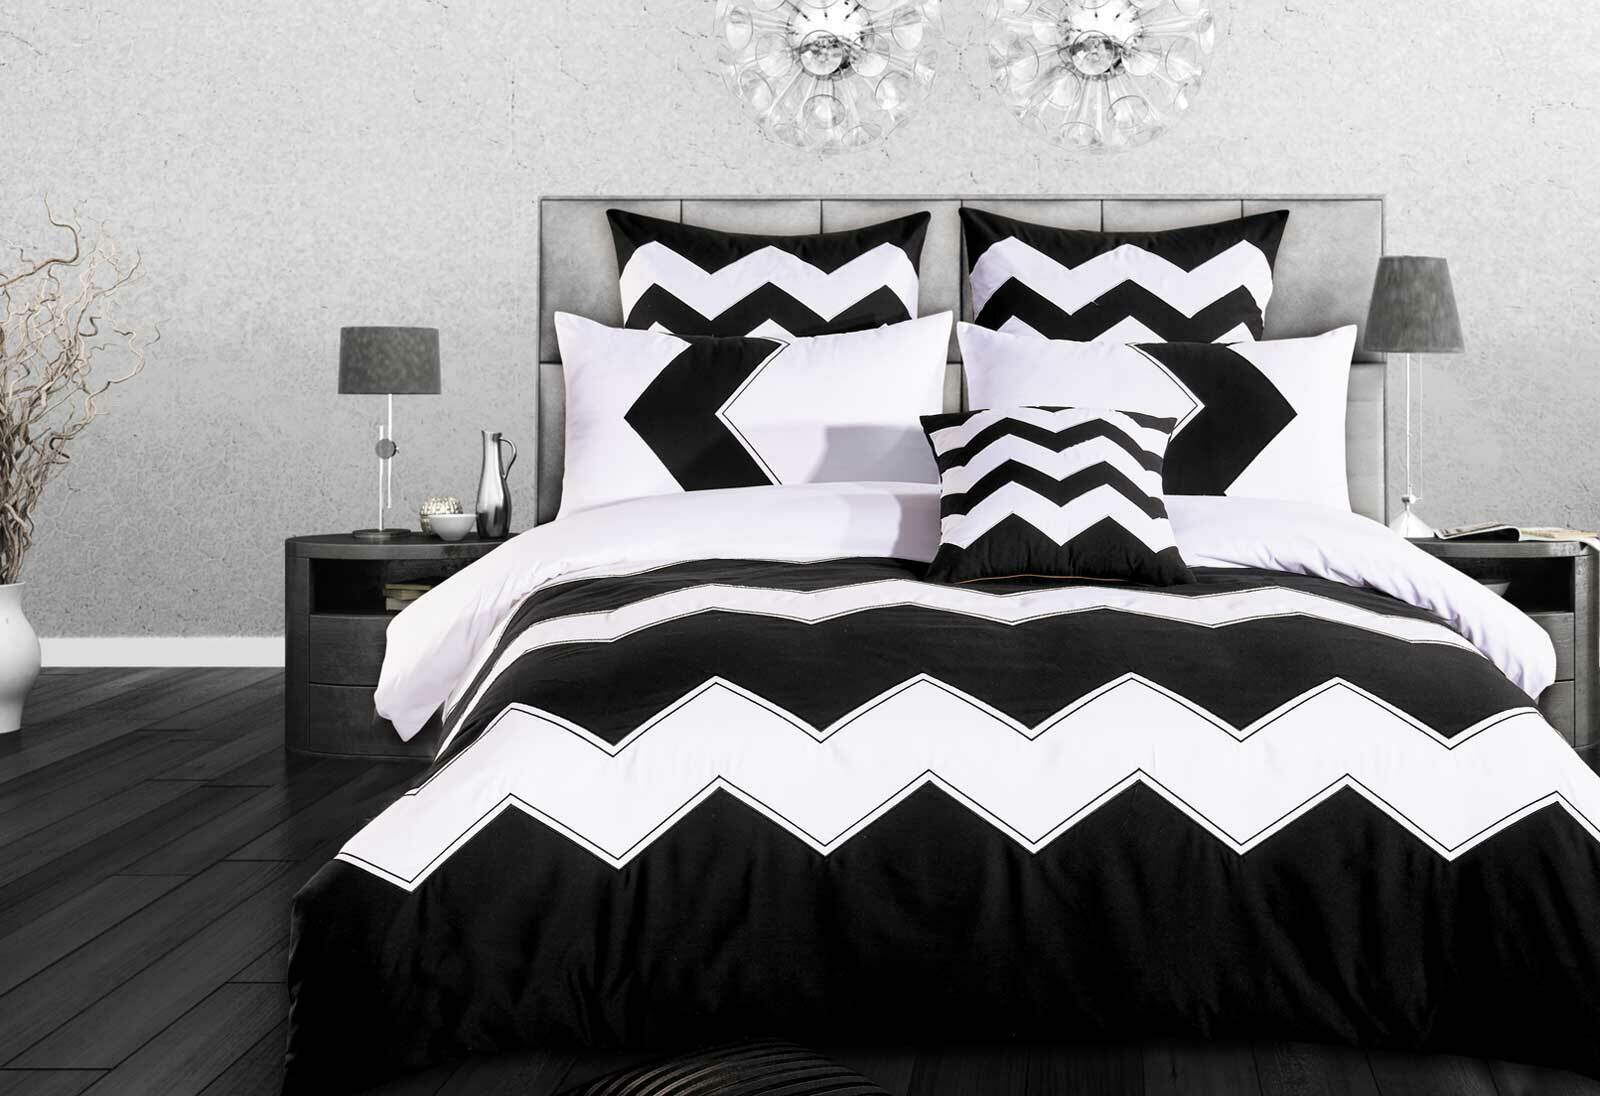 b2494c40a9c Napoli Striped Quilt Cover Set Duvet Cover Set In King